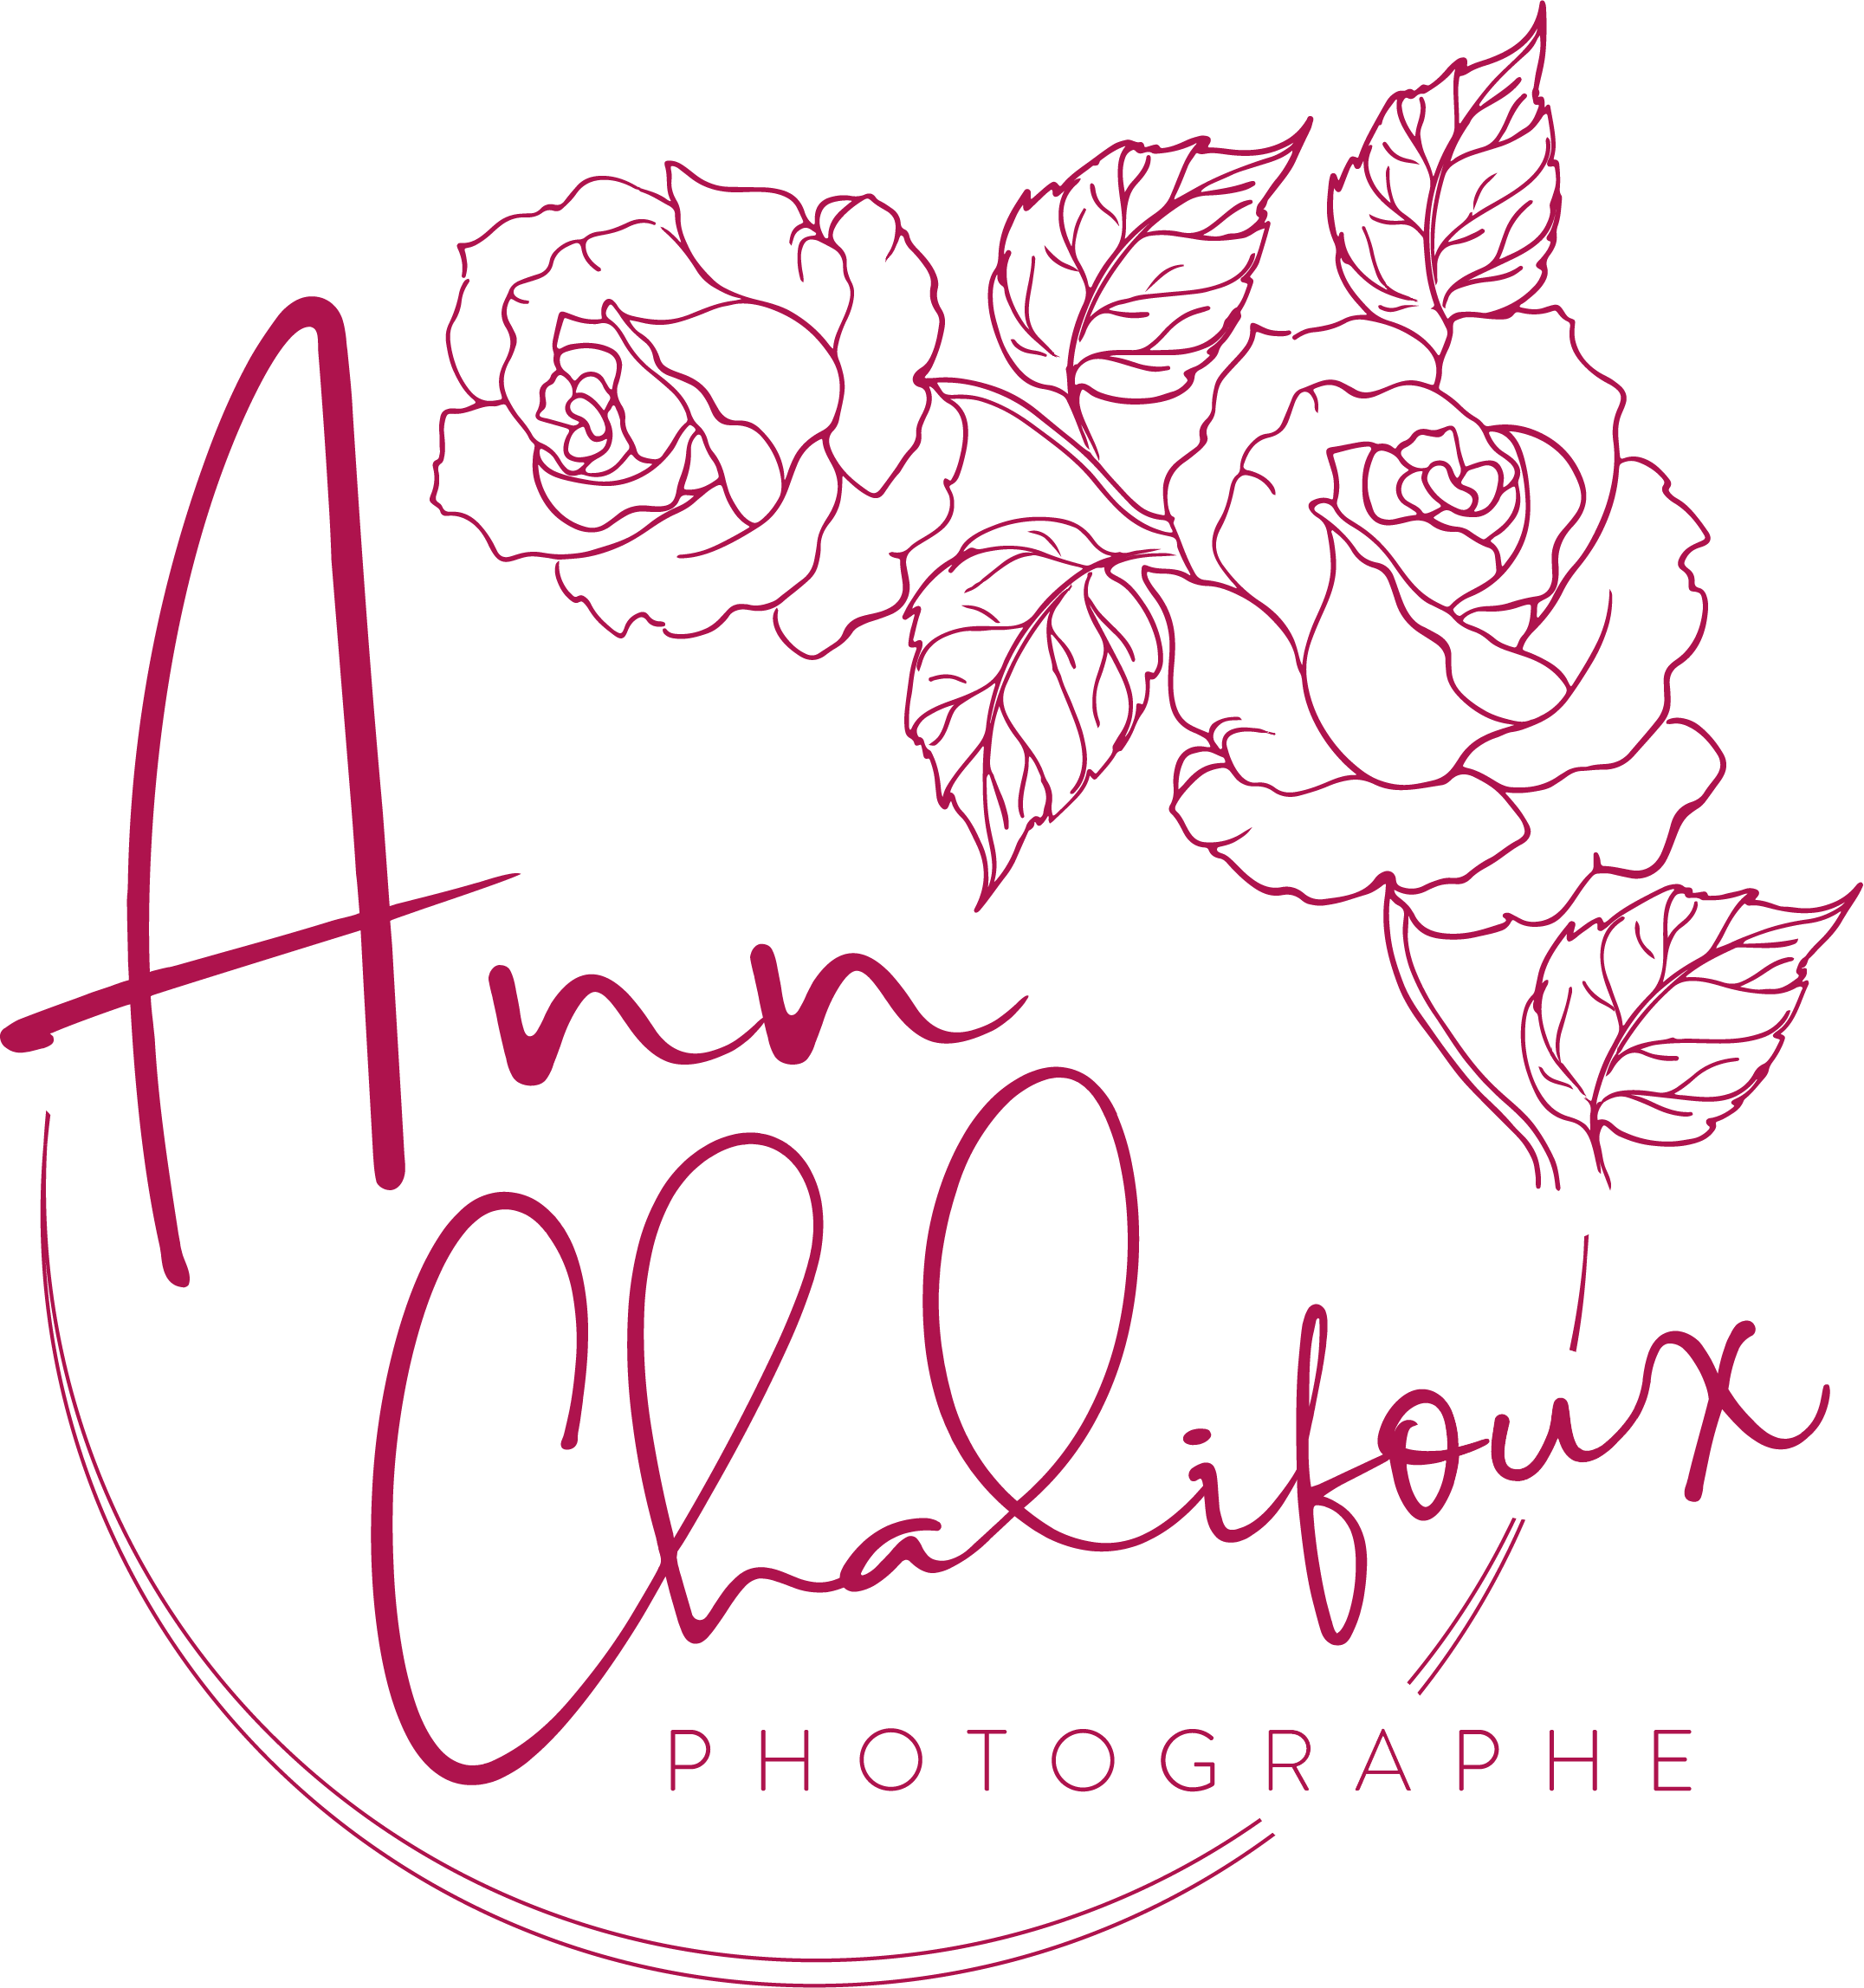 Ann Chalifoux photographe